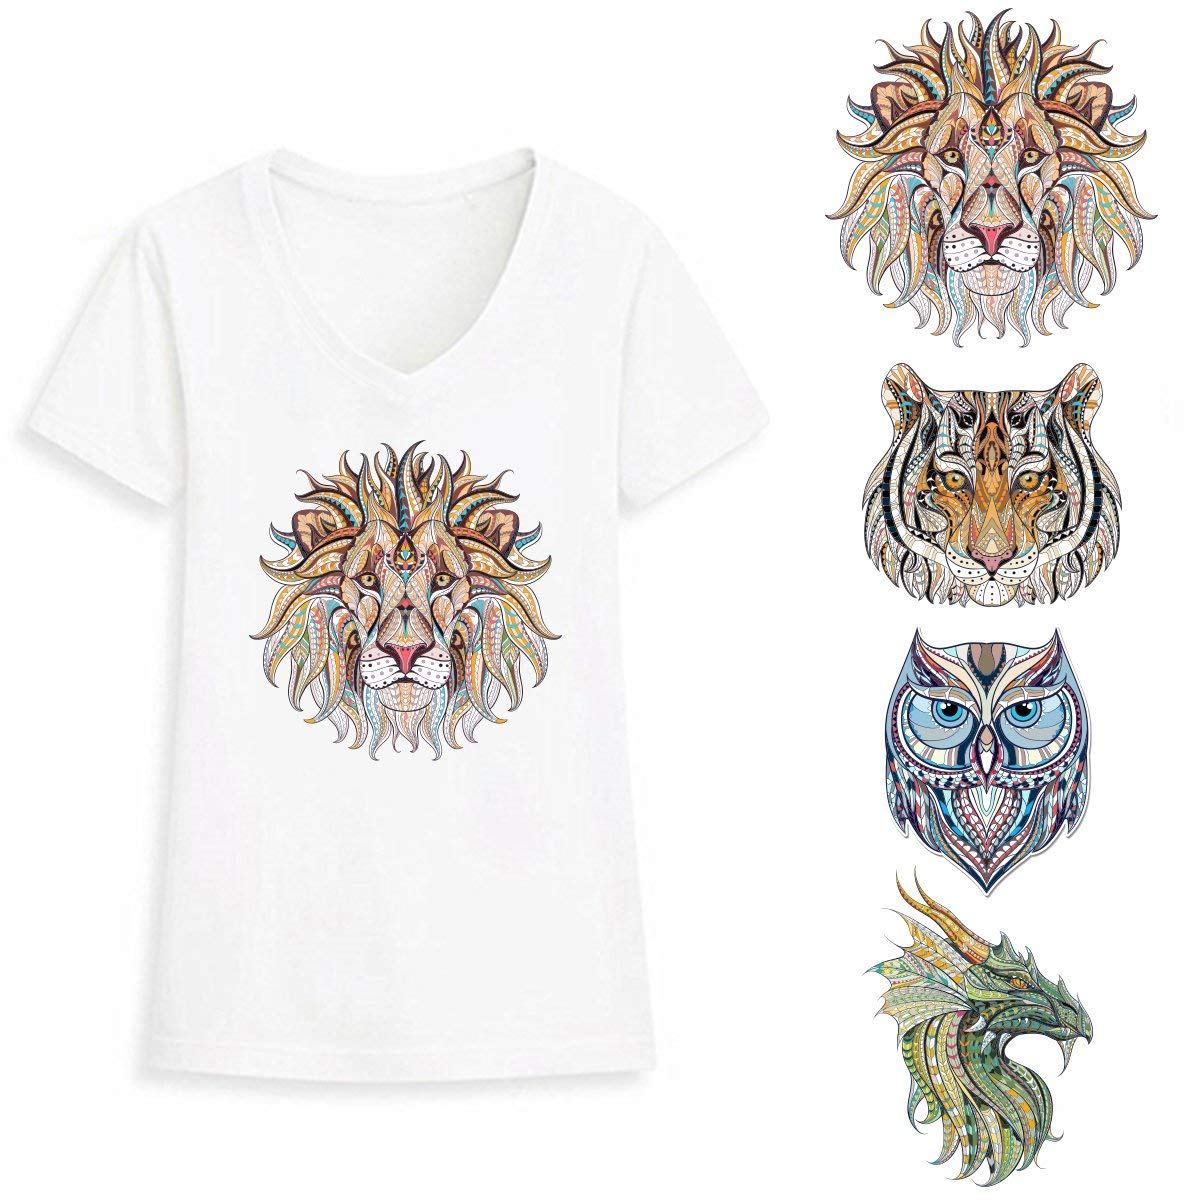 Lion Iron On Transfer Stickers for Kids - 4 Pcs Tiger Vinyl Appliques Decoration Patches. Hot Owl Animal Design Tiger Dragon Heat Transfer for DIY Theme Party